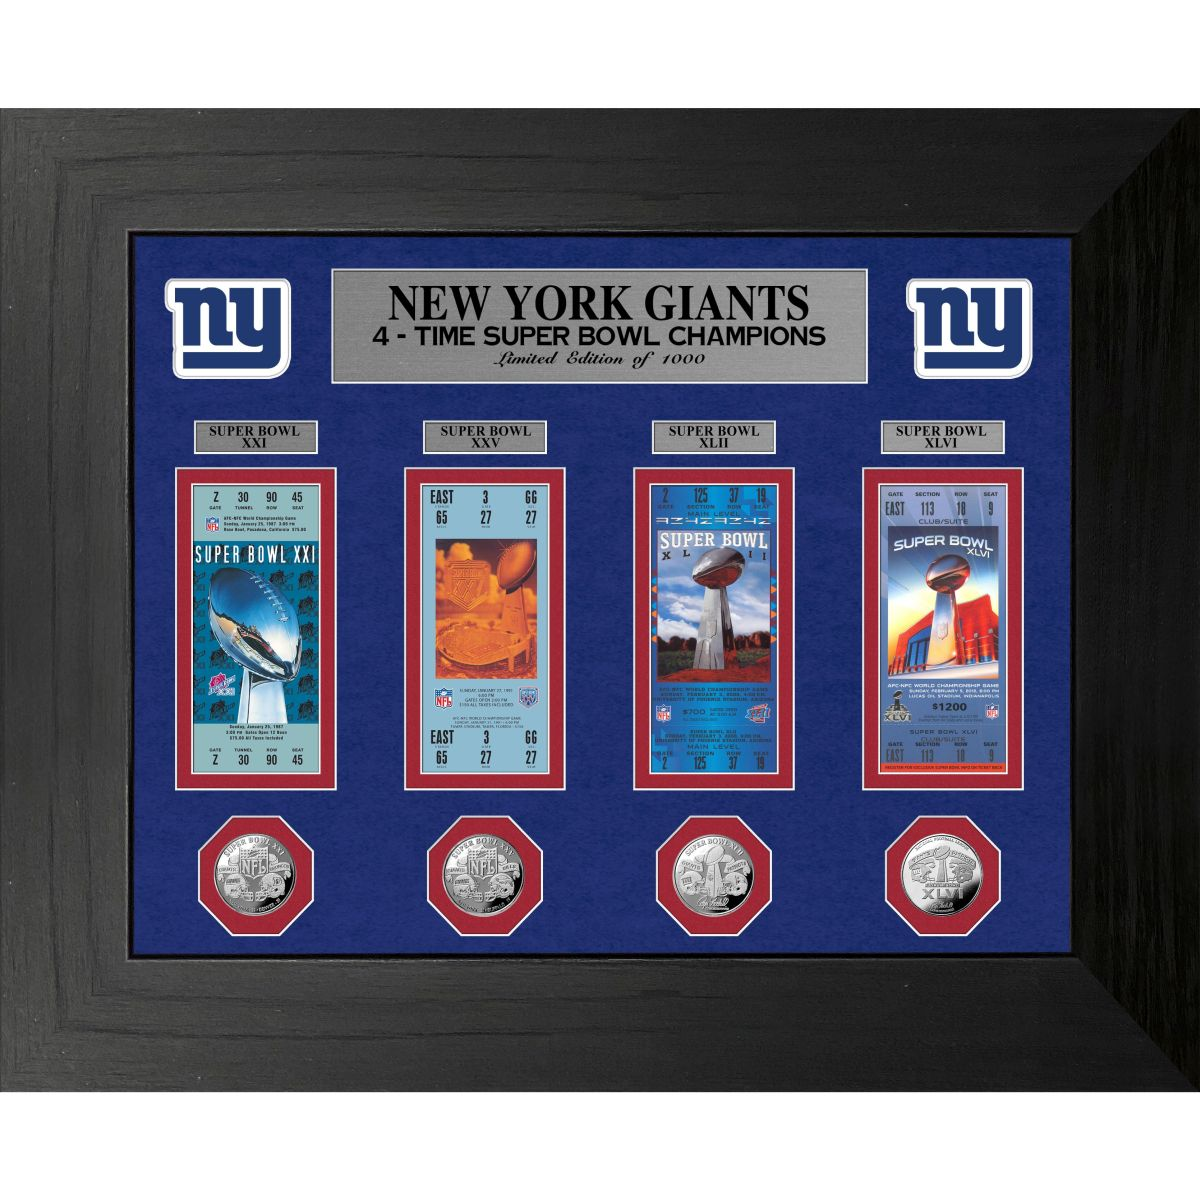 New York Giants Super Bowl Champions Deluxe Silver Coin & Ticket Collection